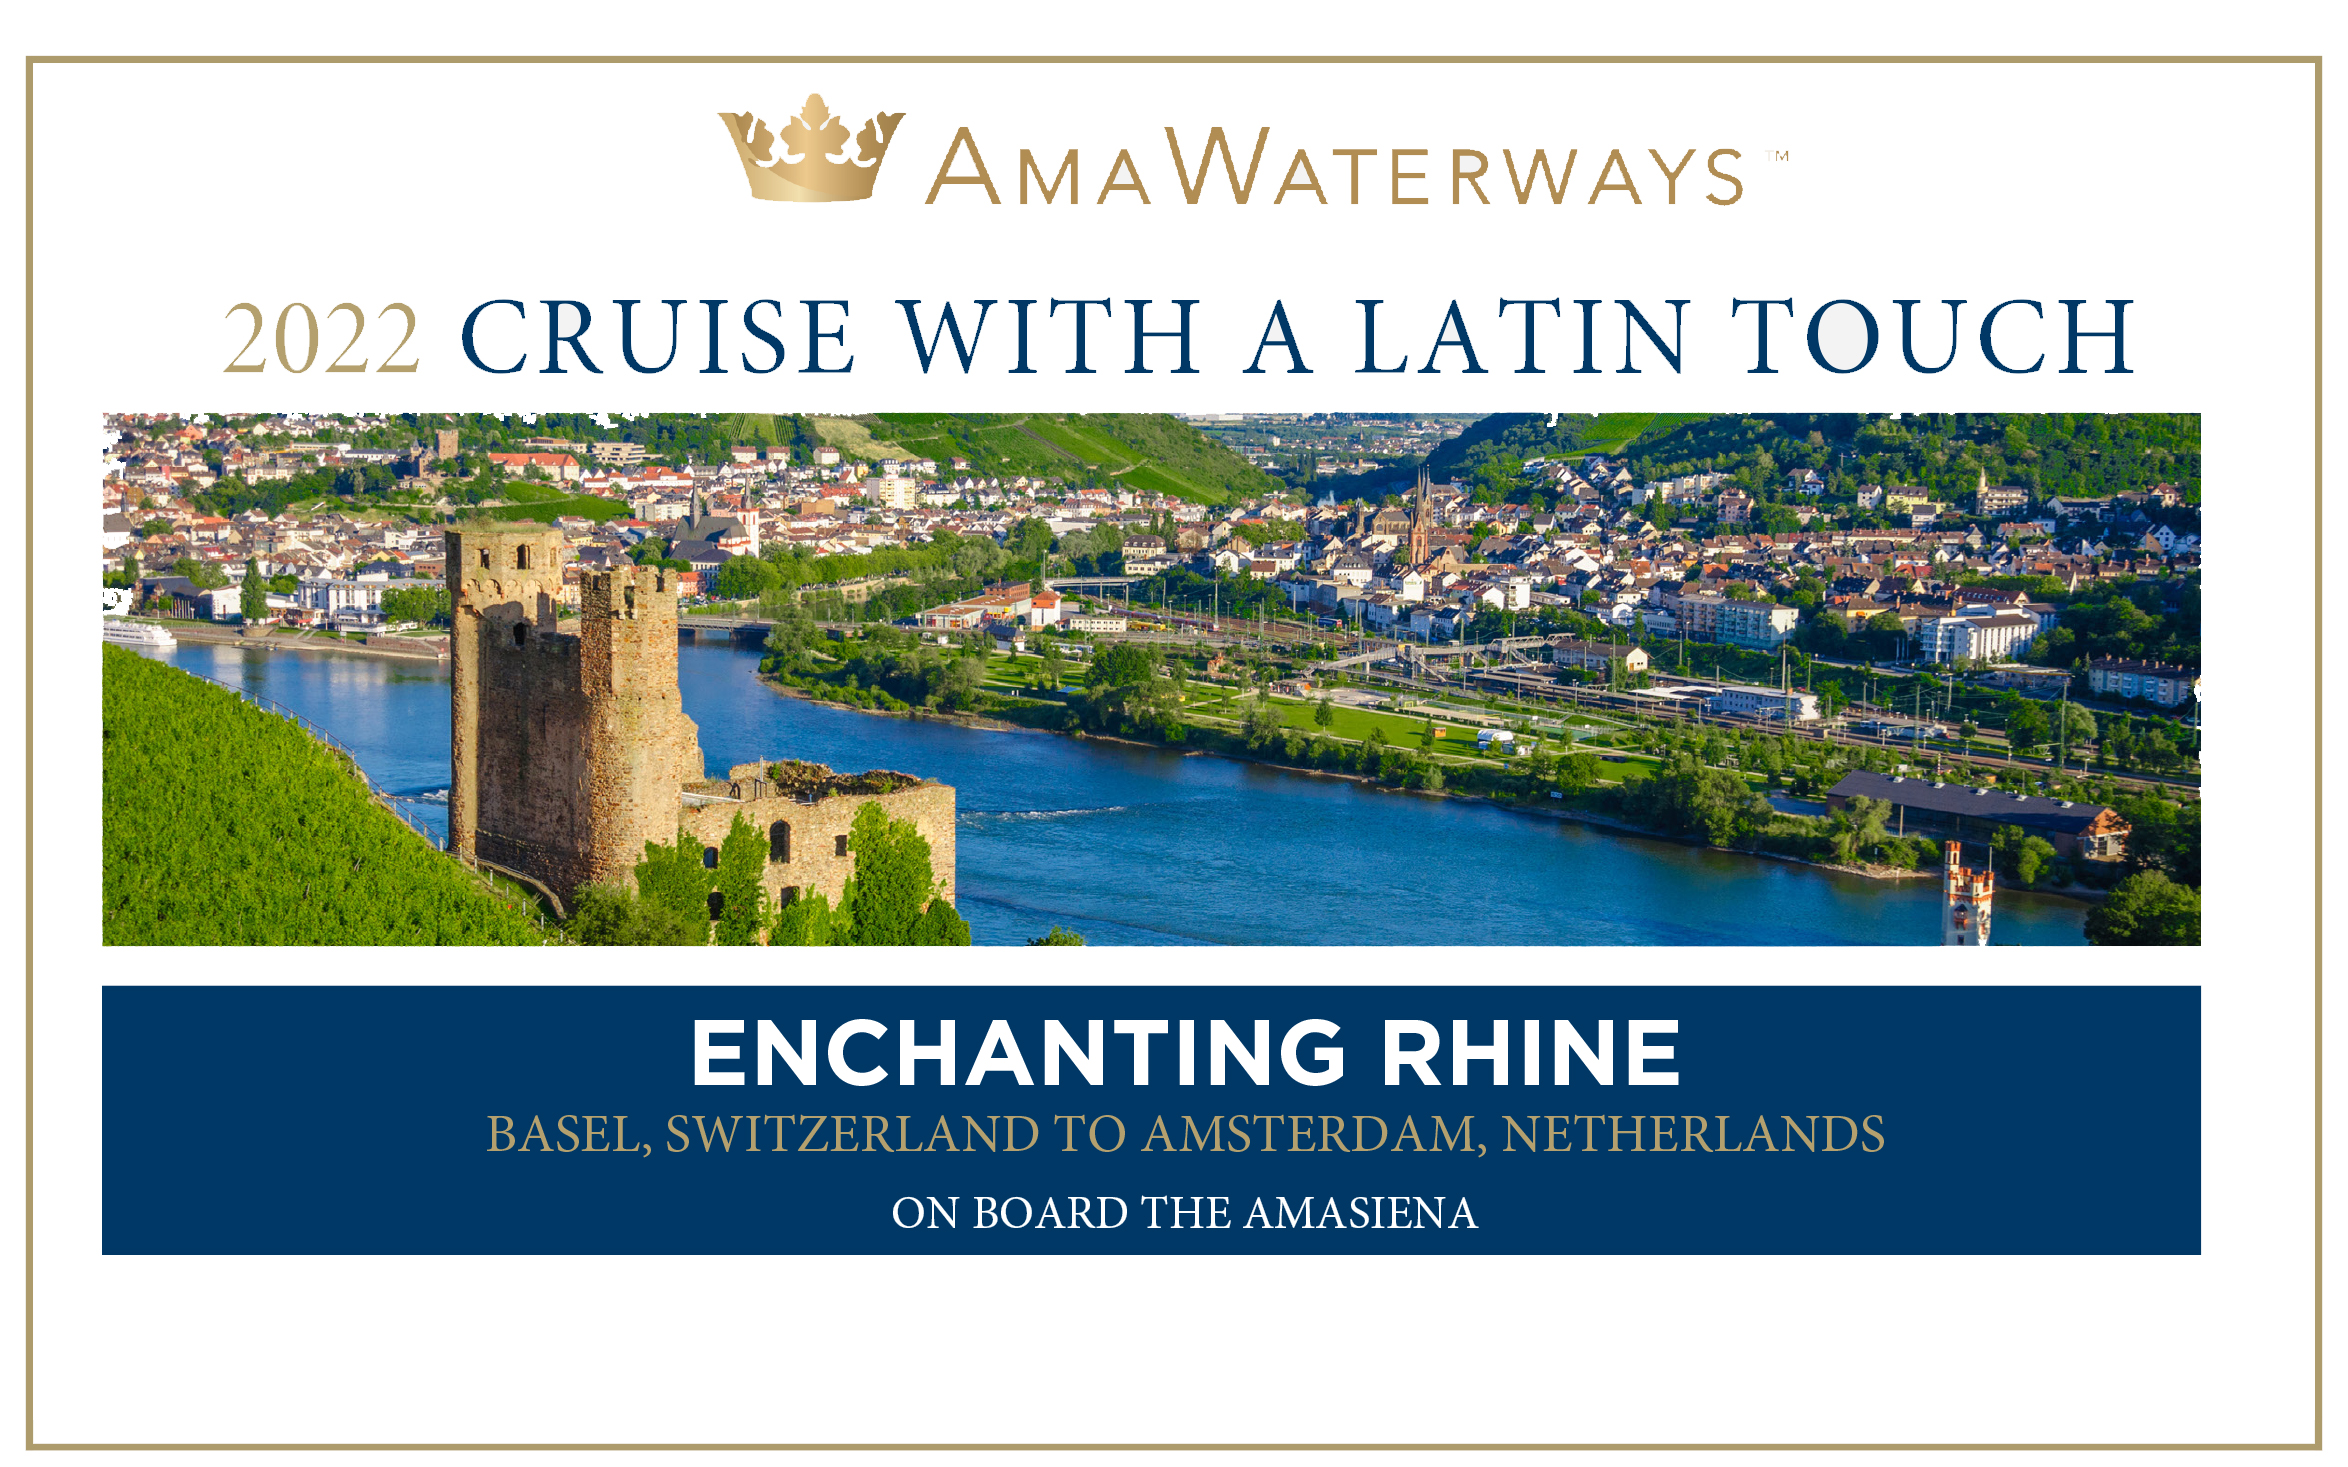 Travel with Ama Latin Tour and Get Up to $1,500 Cruise Savings, $100 Shipboard credit Per person, Prepaid Gratuities and More!